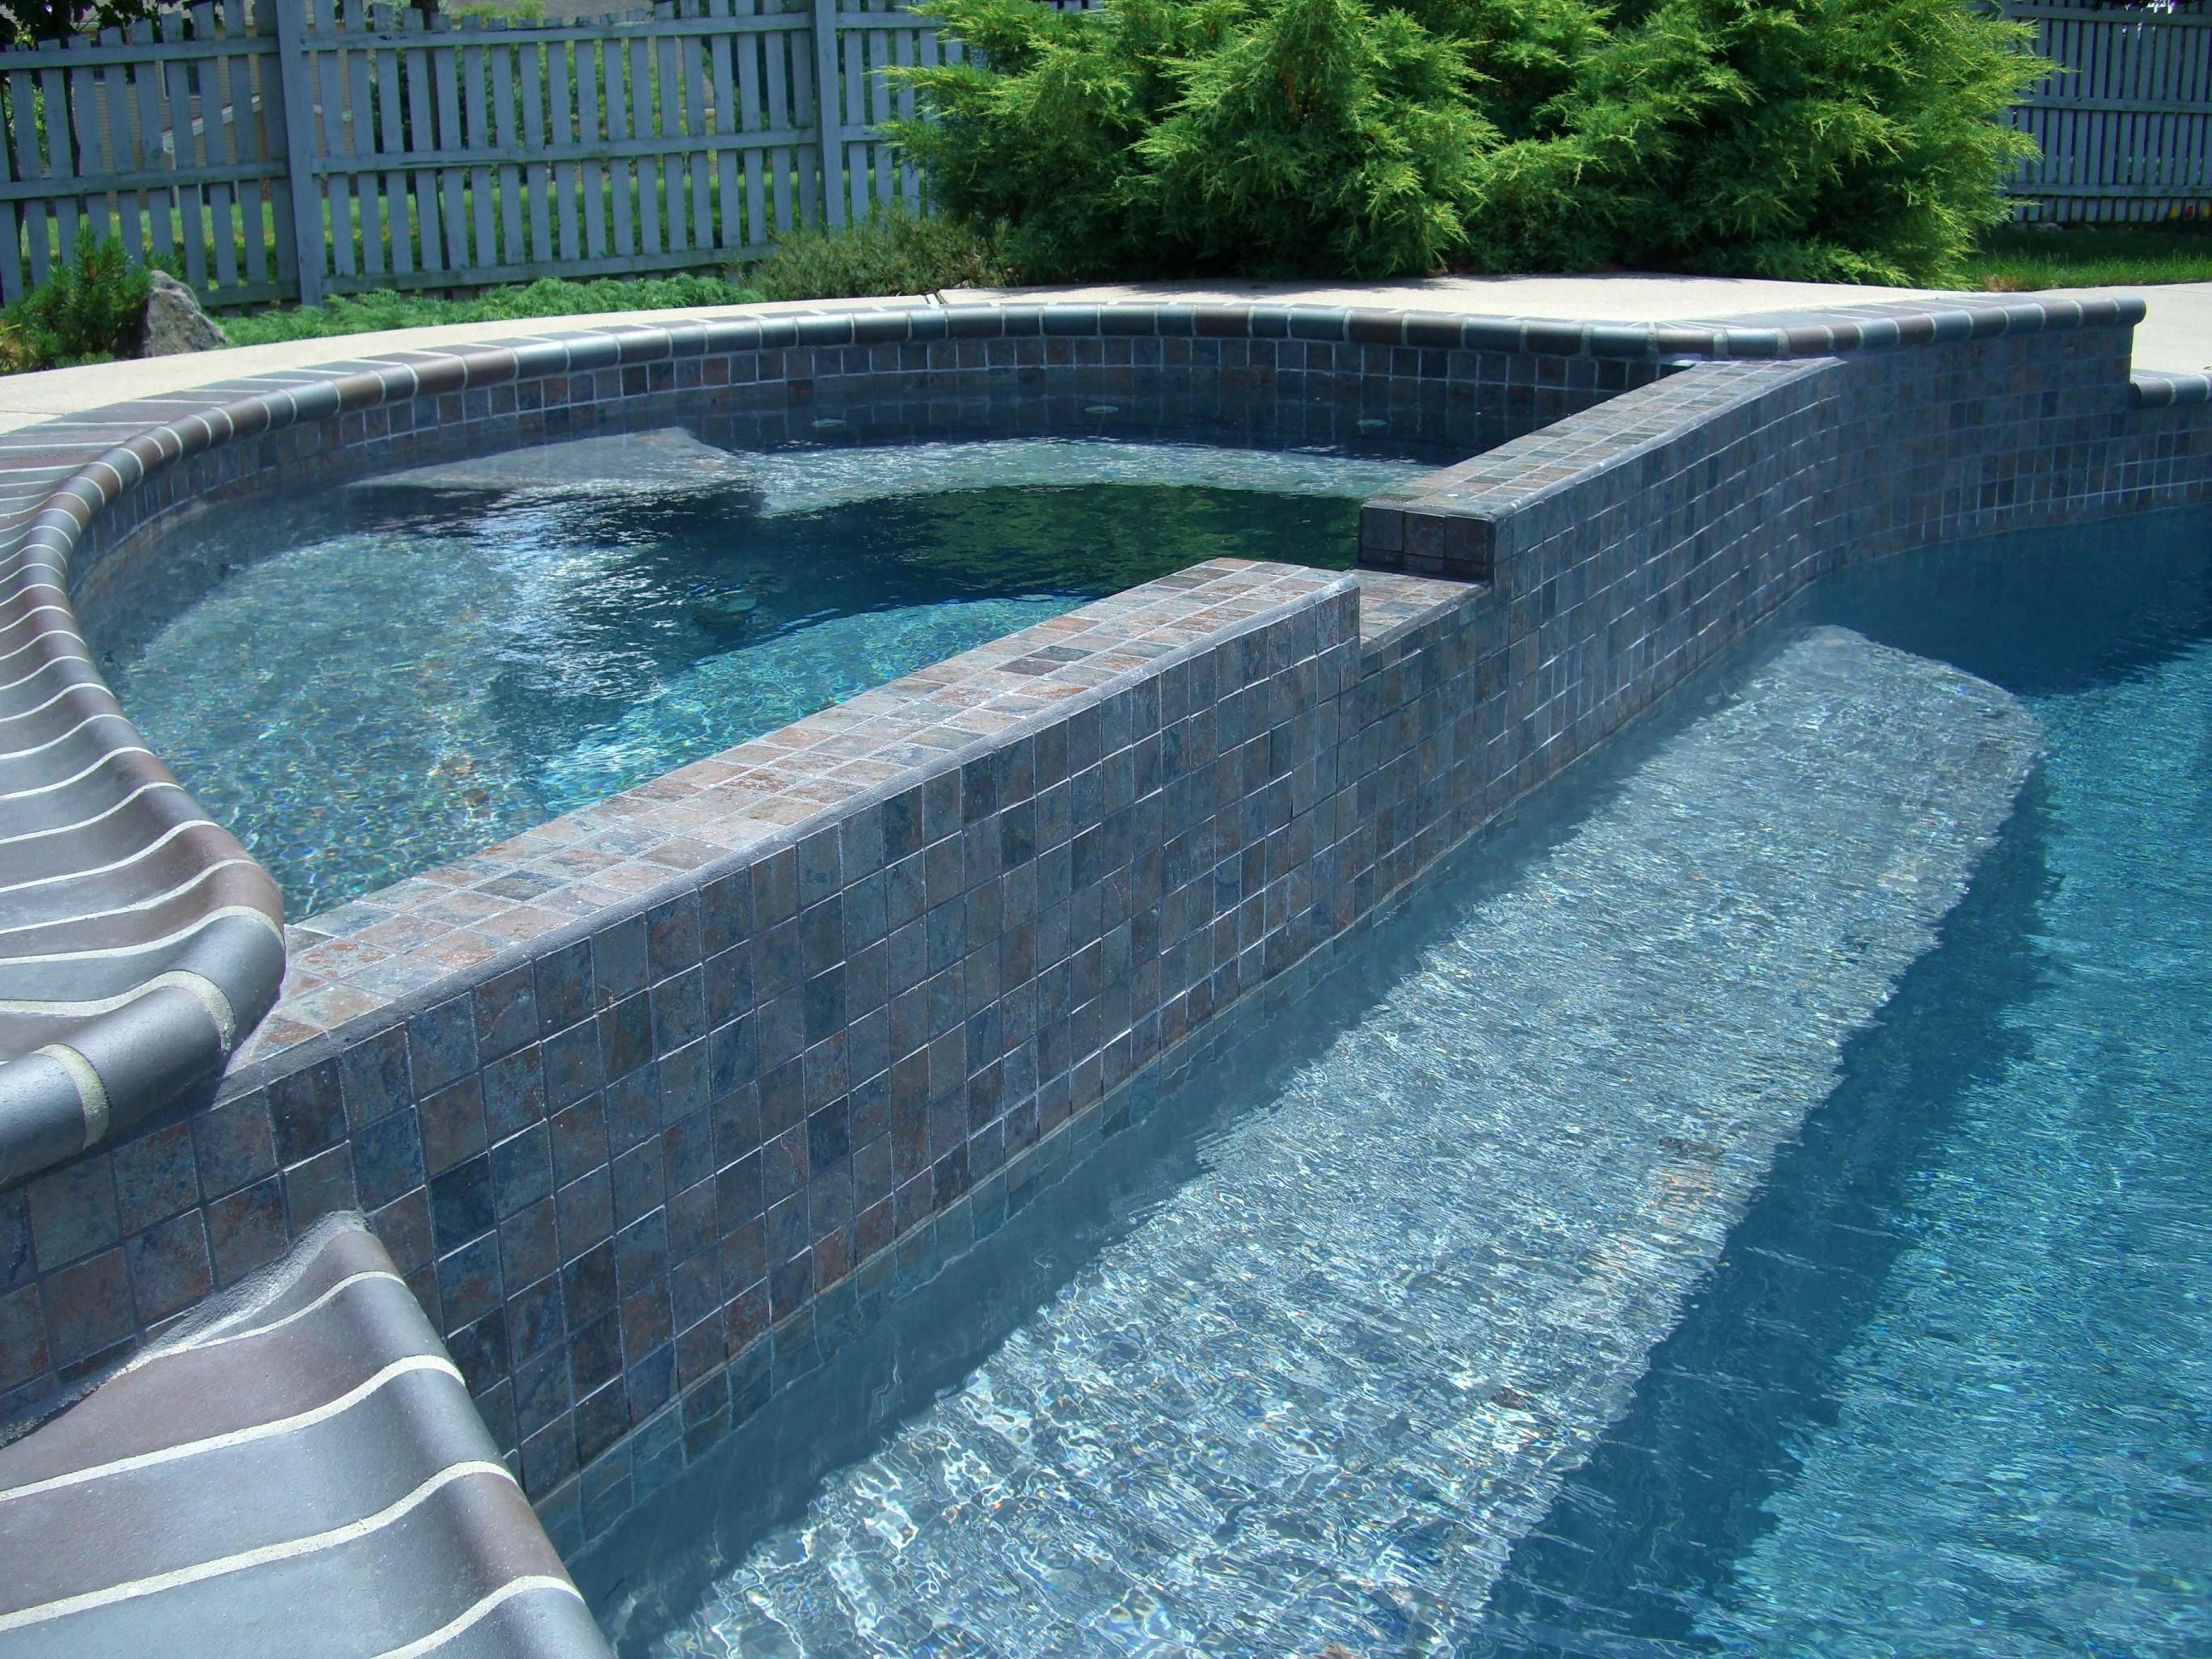 Pool Tile And Coping Ideas inground pool coping idea and cost guide Gray Plaster Dark Ironspot Coping Aztek Cobalt Tilejpg 27362052